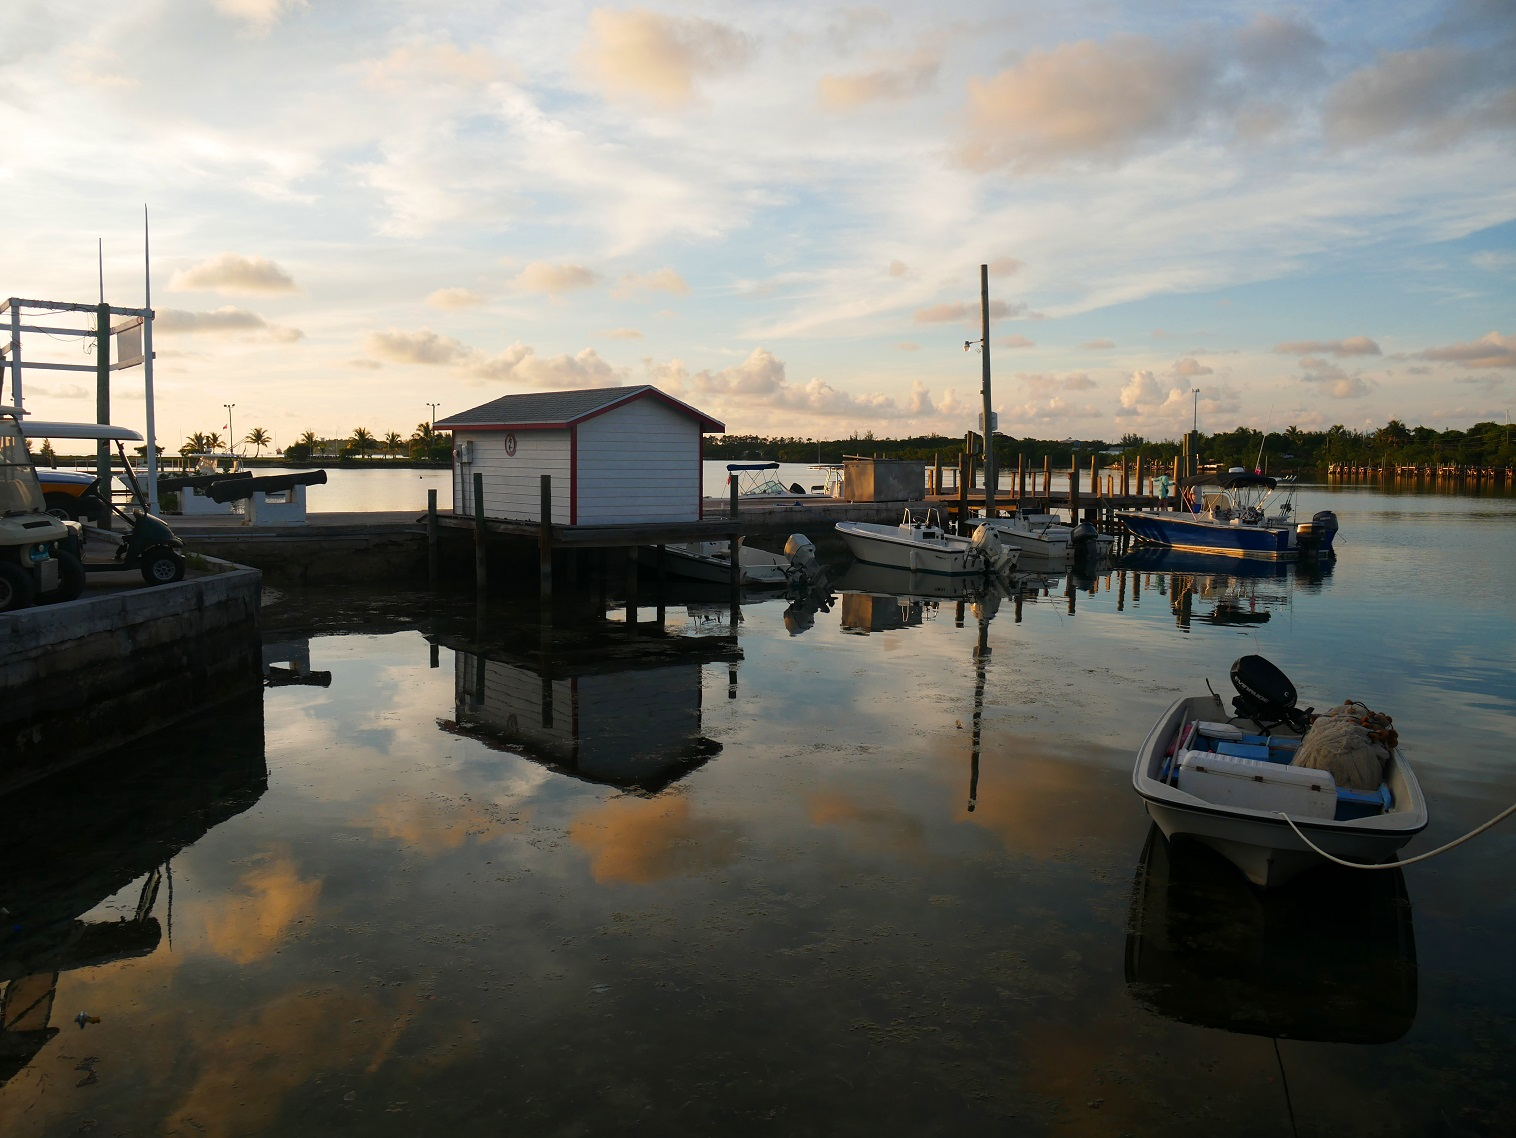 Govt Dock at Sunset - Green Turtle Cay, Abaco, Bahamas